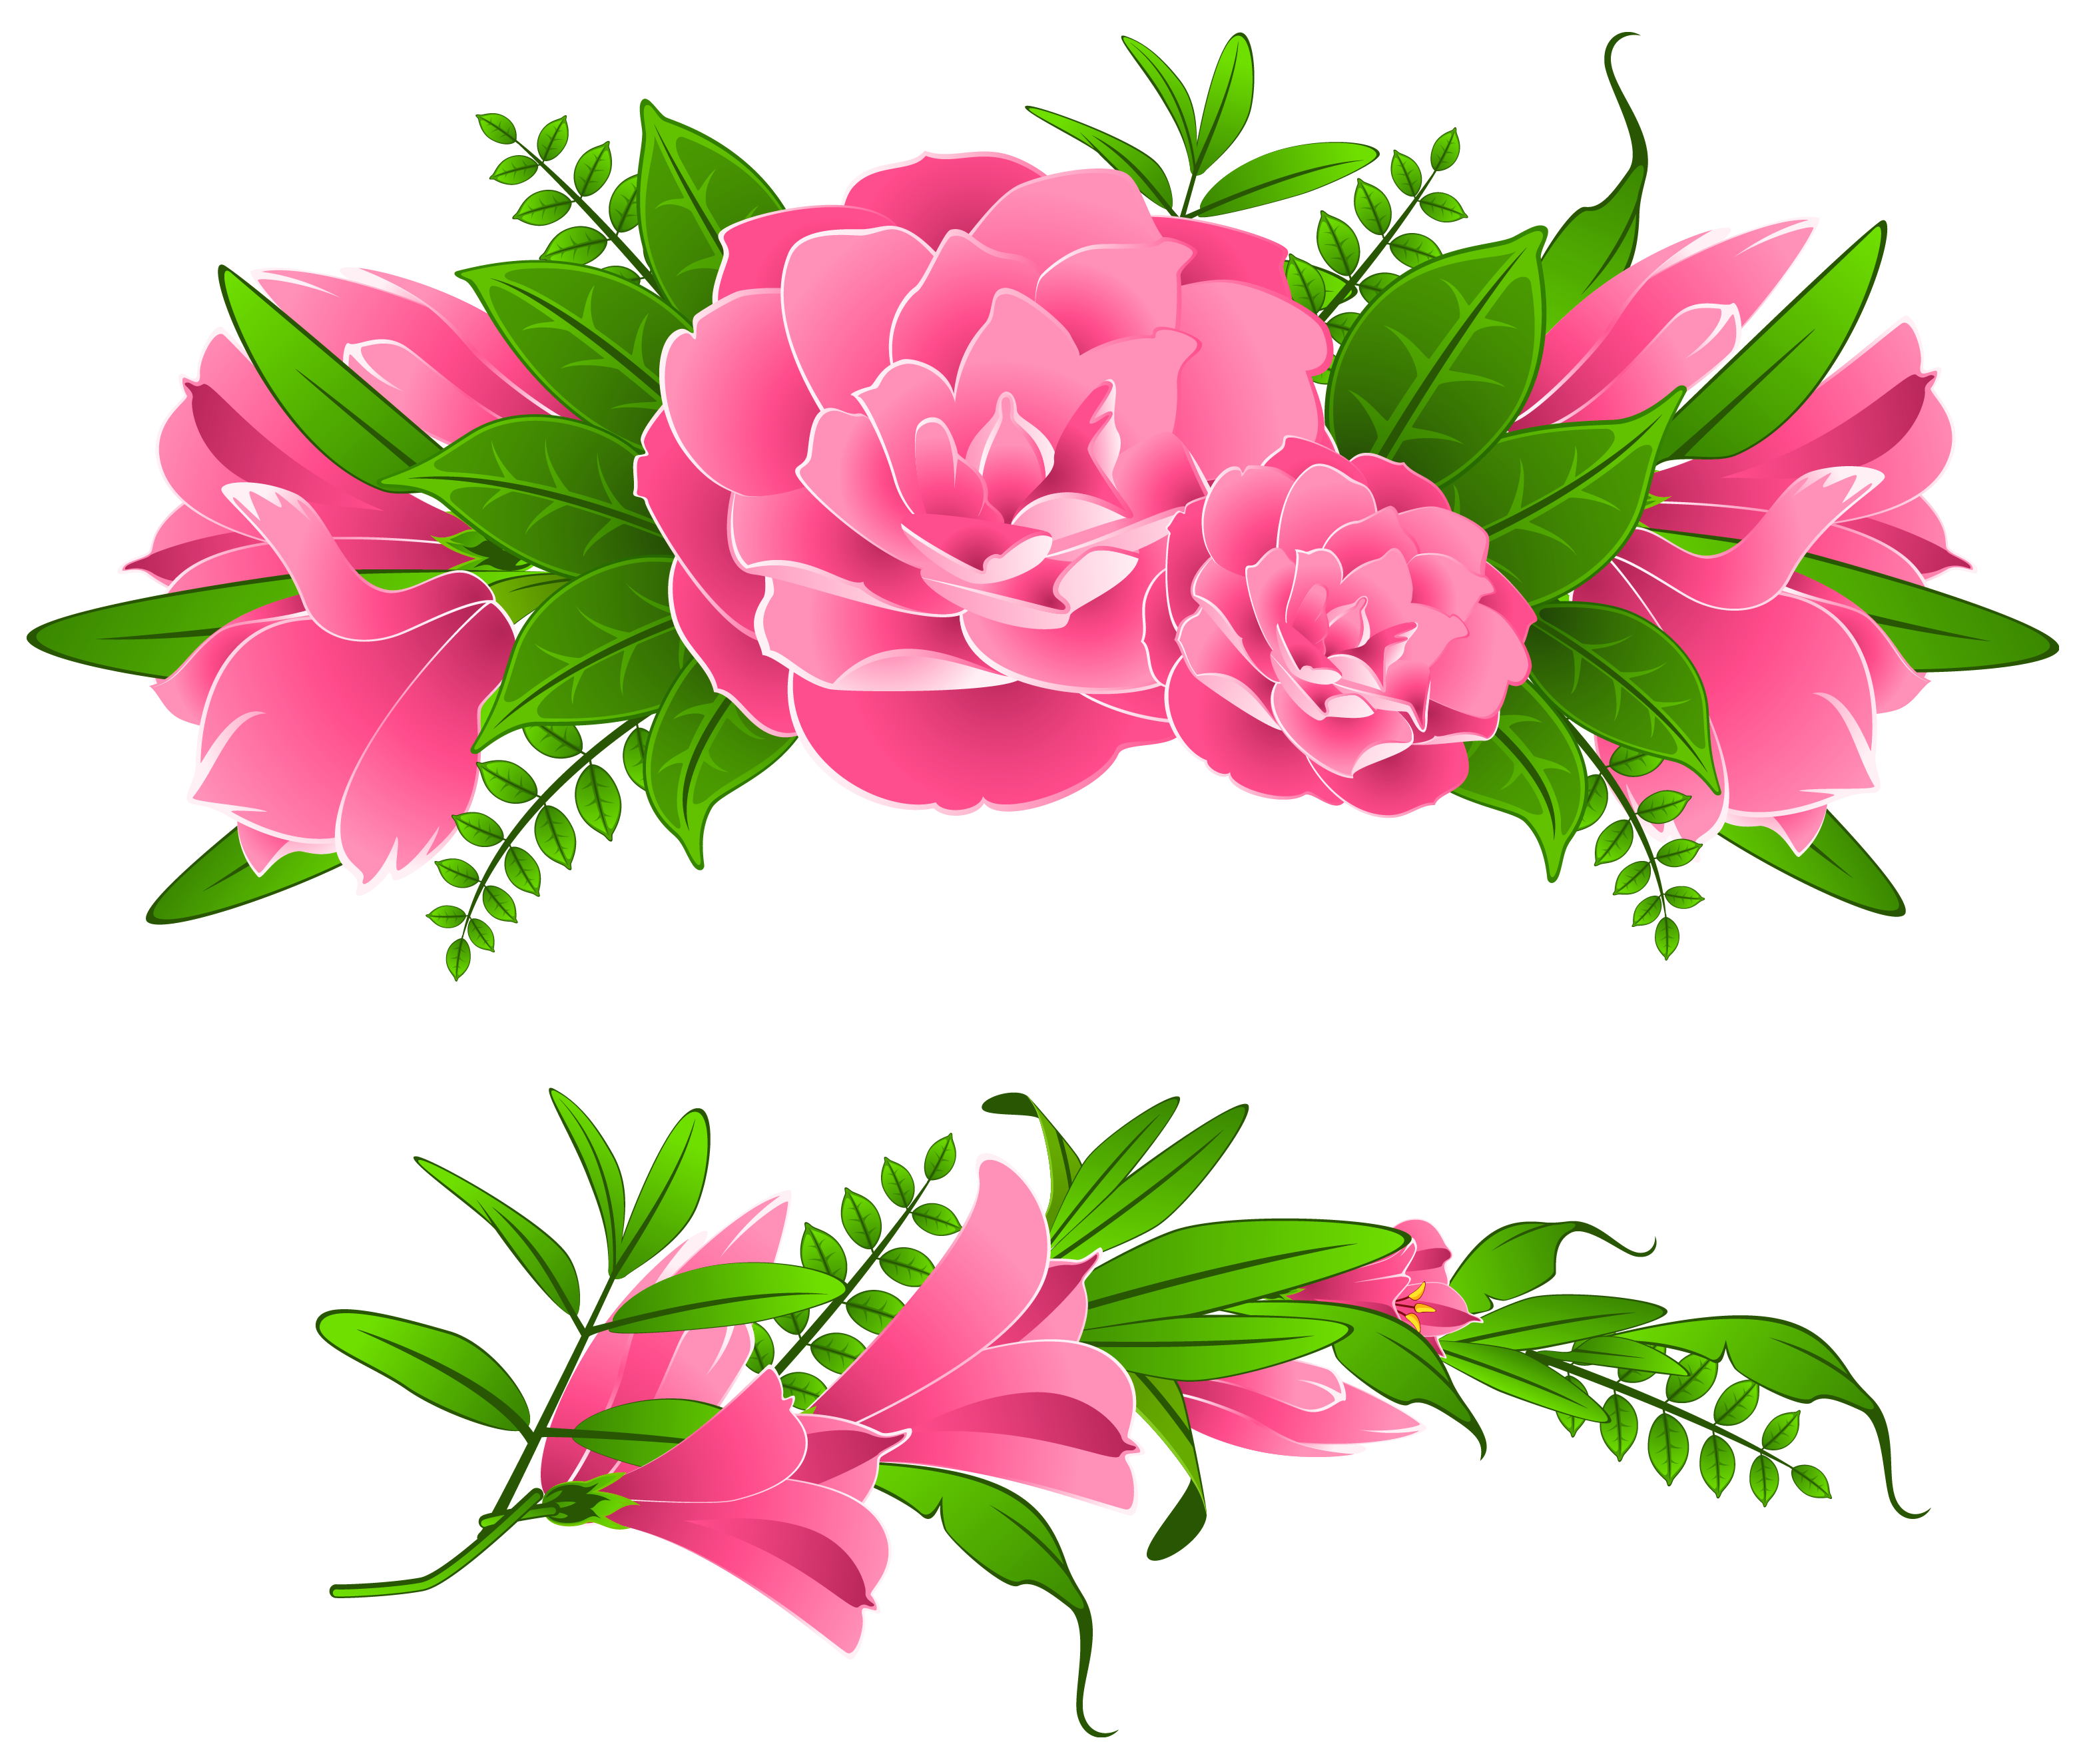 Free flower frame clipart freeuse download Flower Border Png | Free Download Clip Art | Free Clip Art | on ... freeuse download